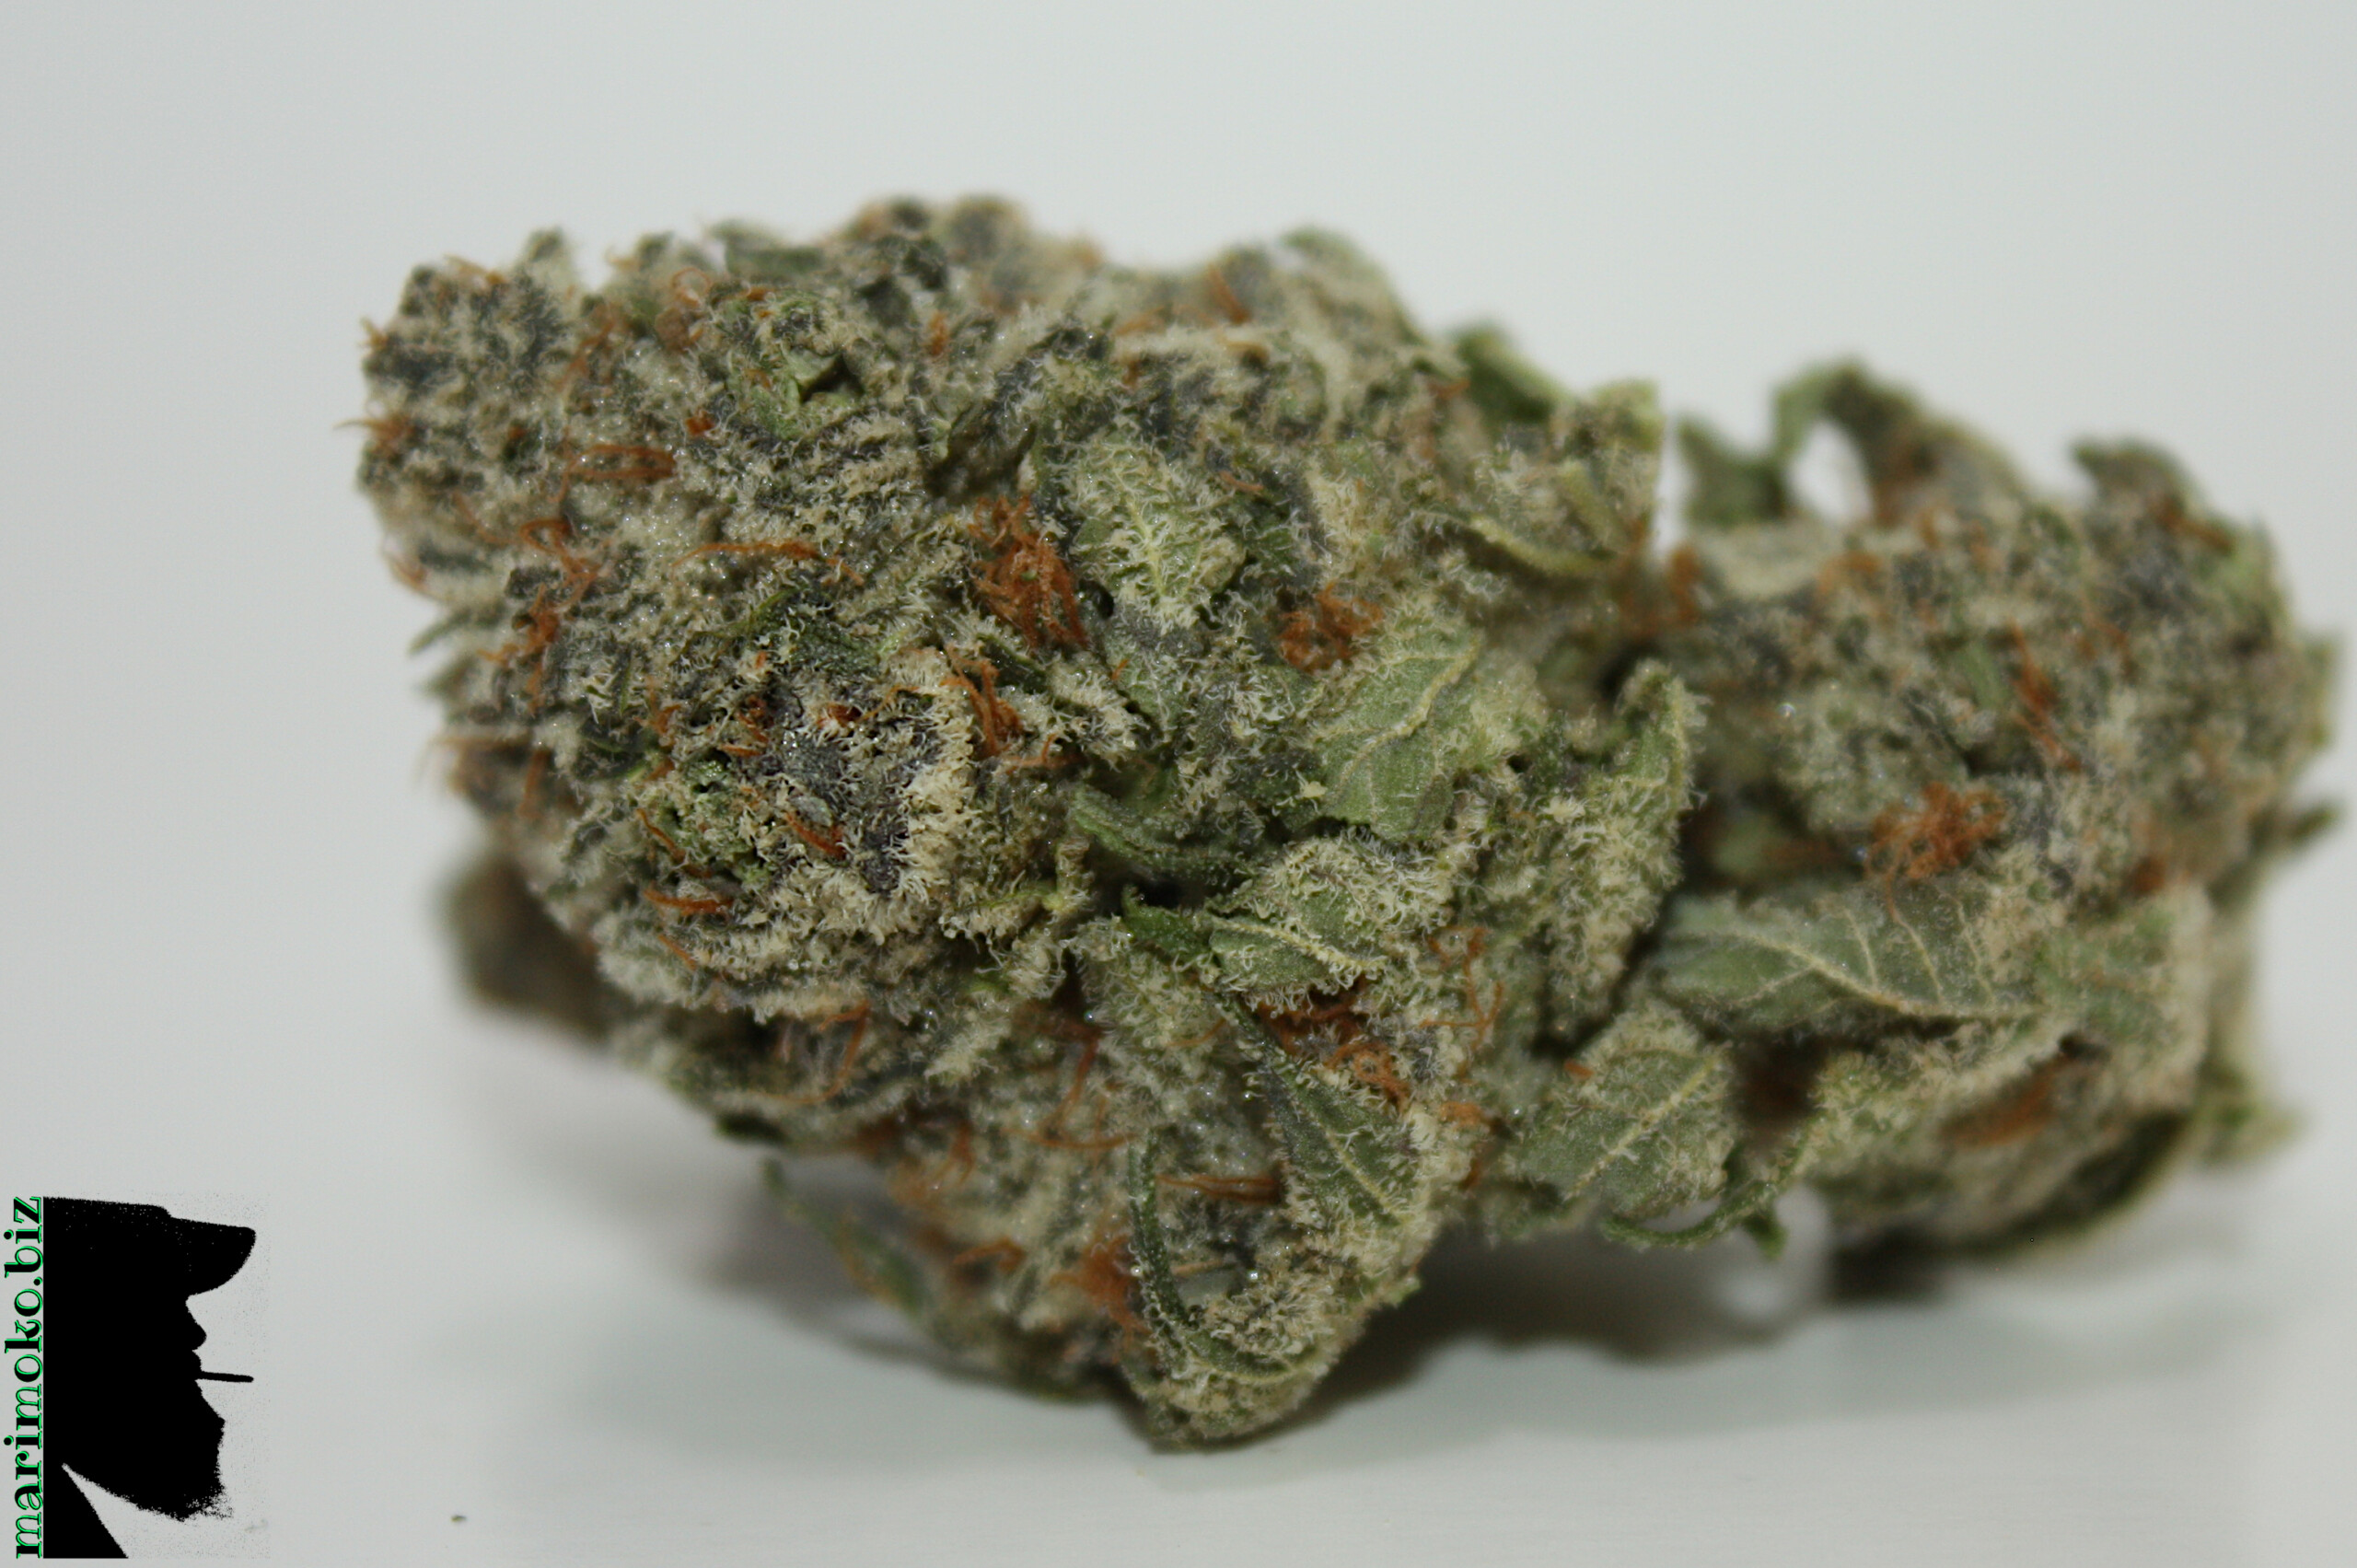 Blue Lights From BC Cann Co